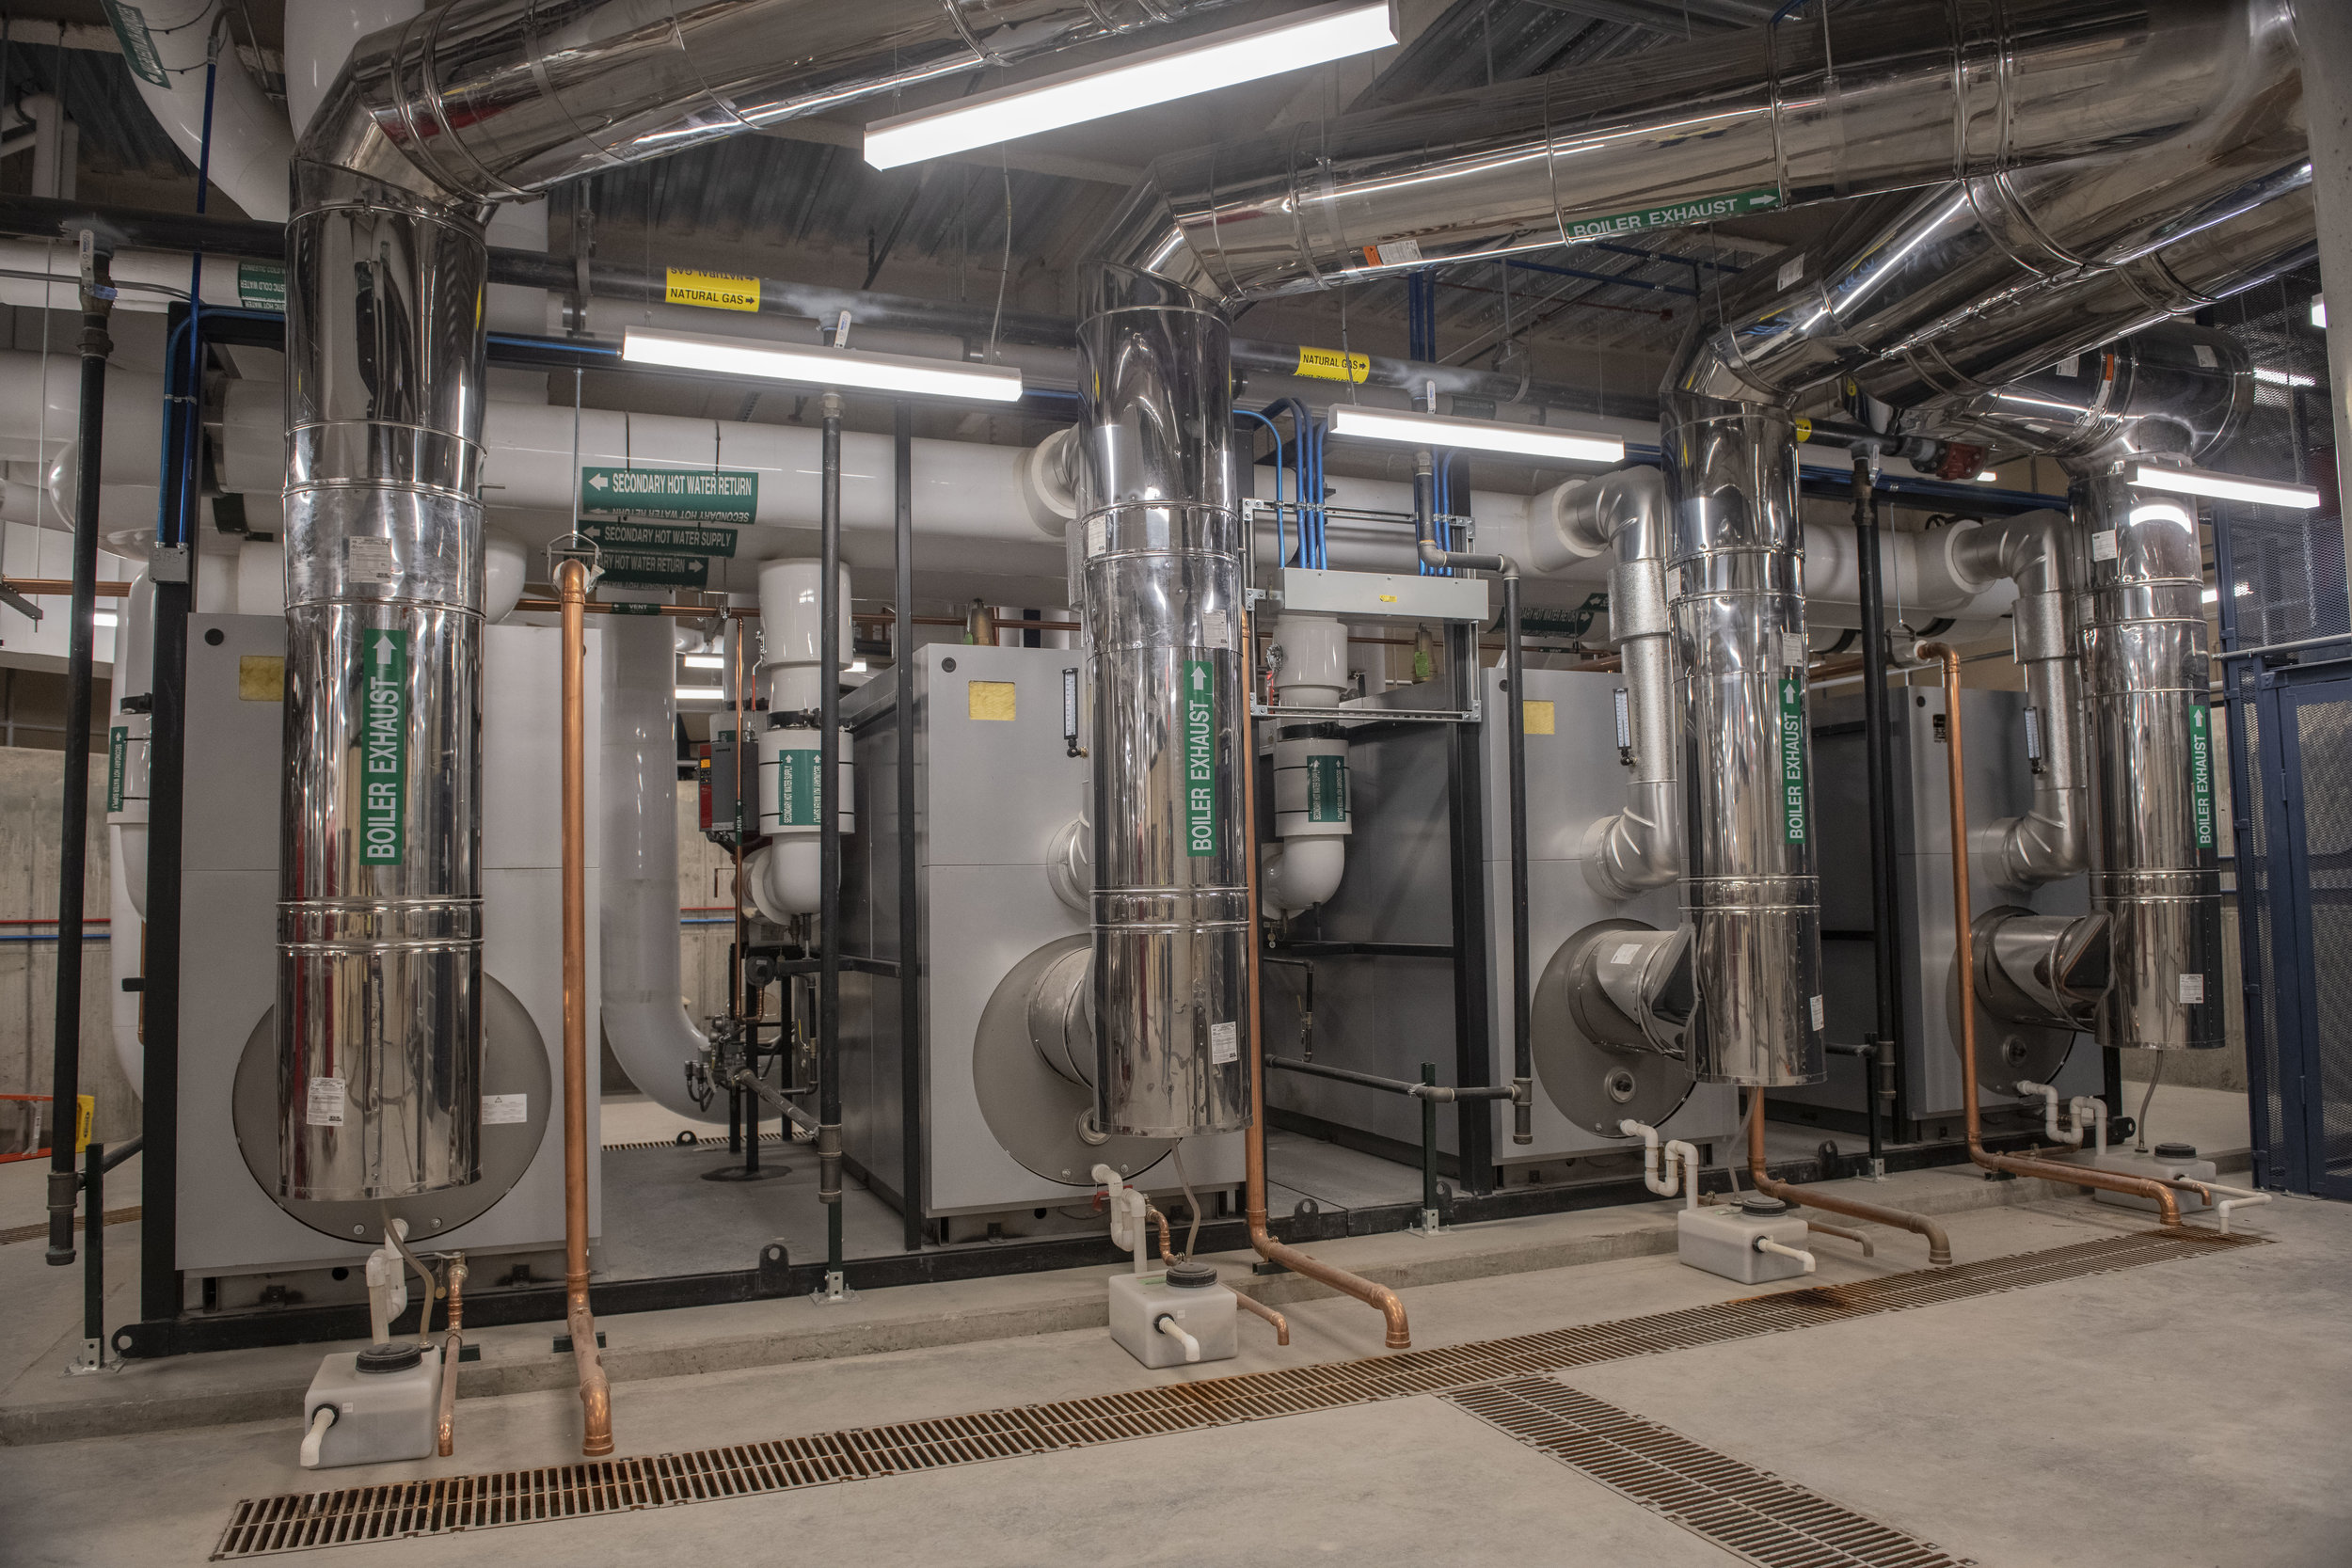 The new CUP has four boilers that feed the heating systems for the Herschler Building, the Capitol Extension, and the Capitol.